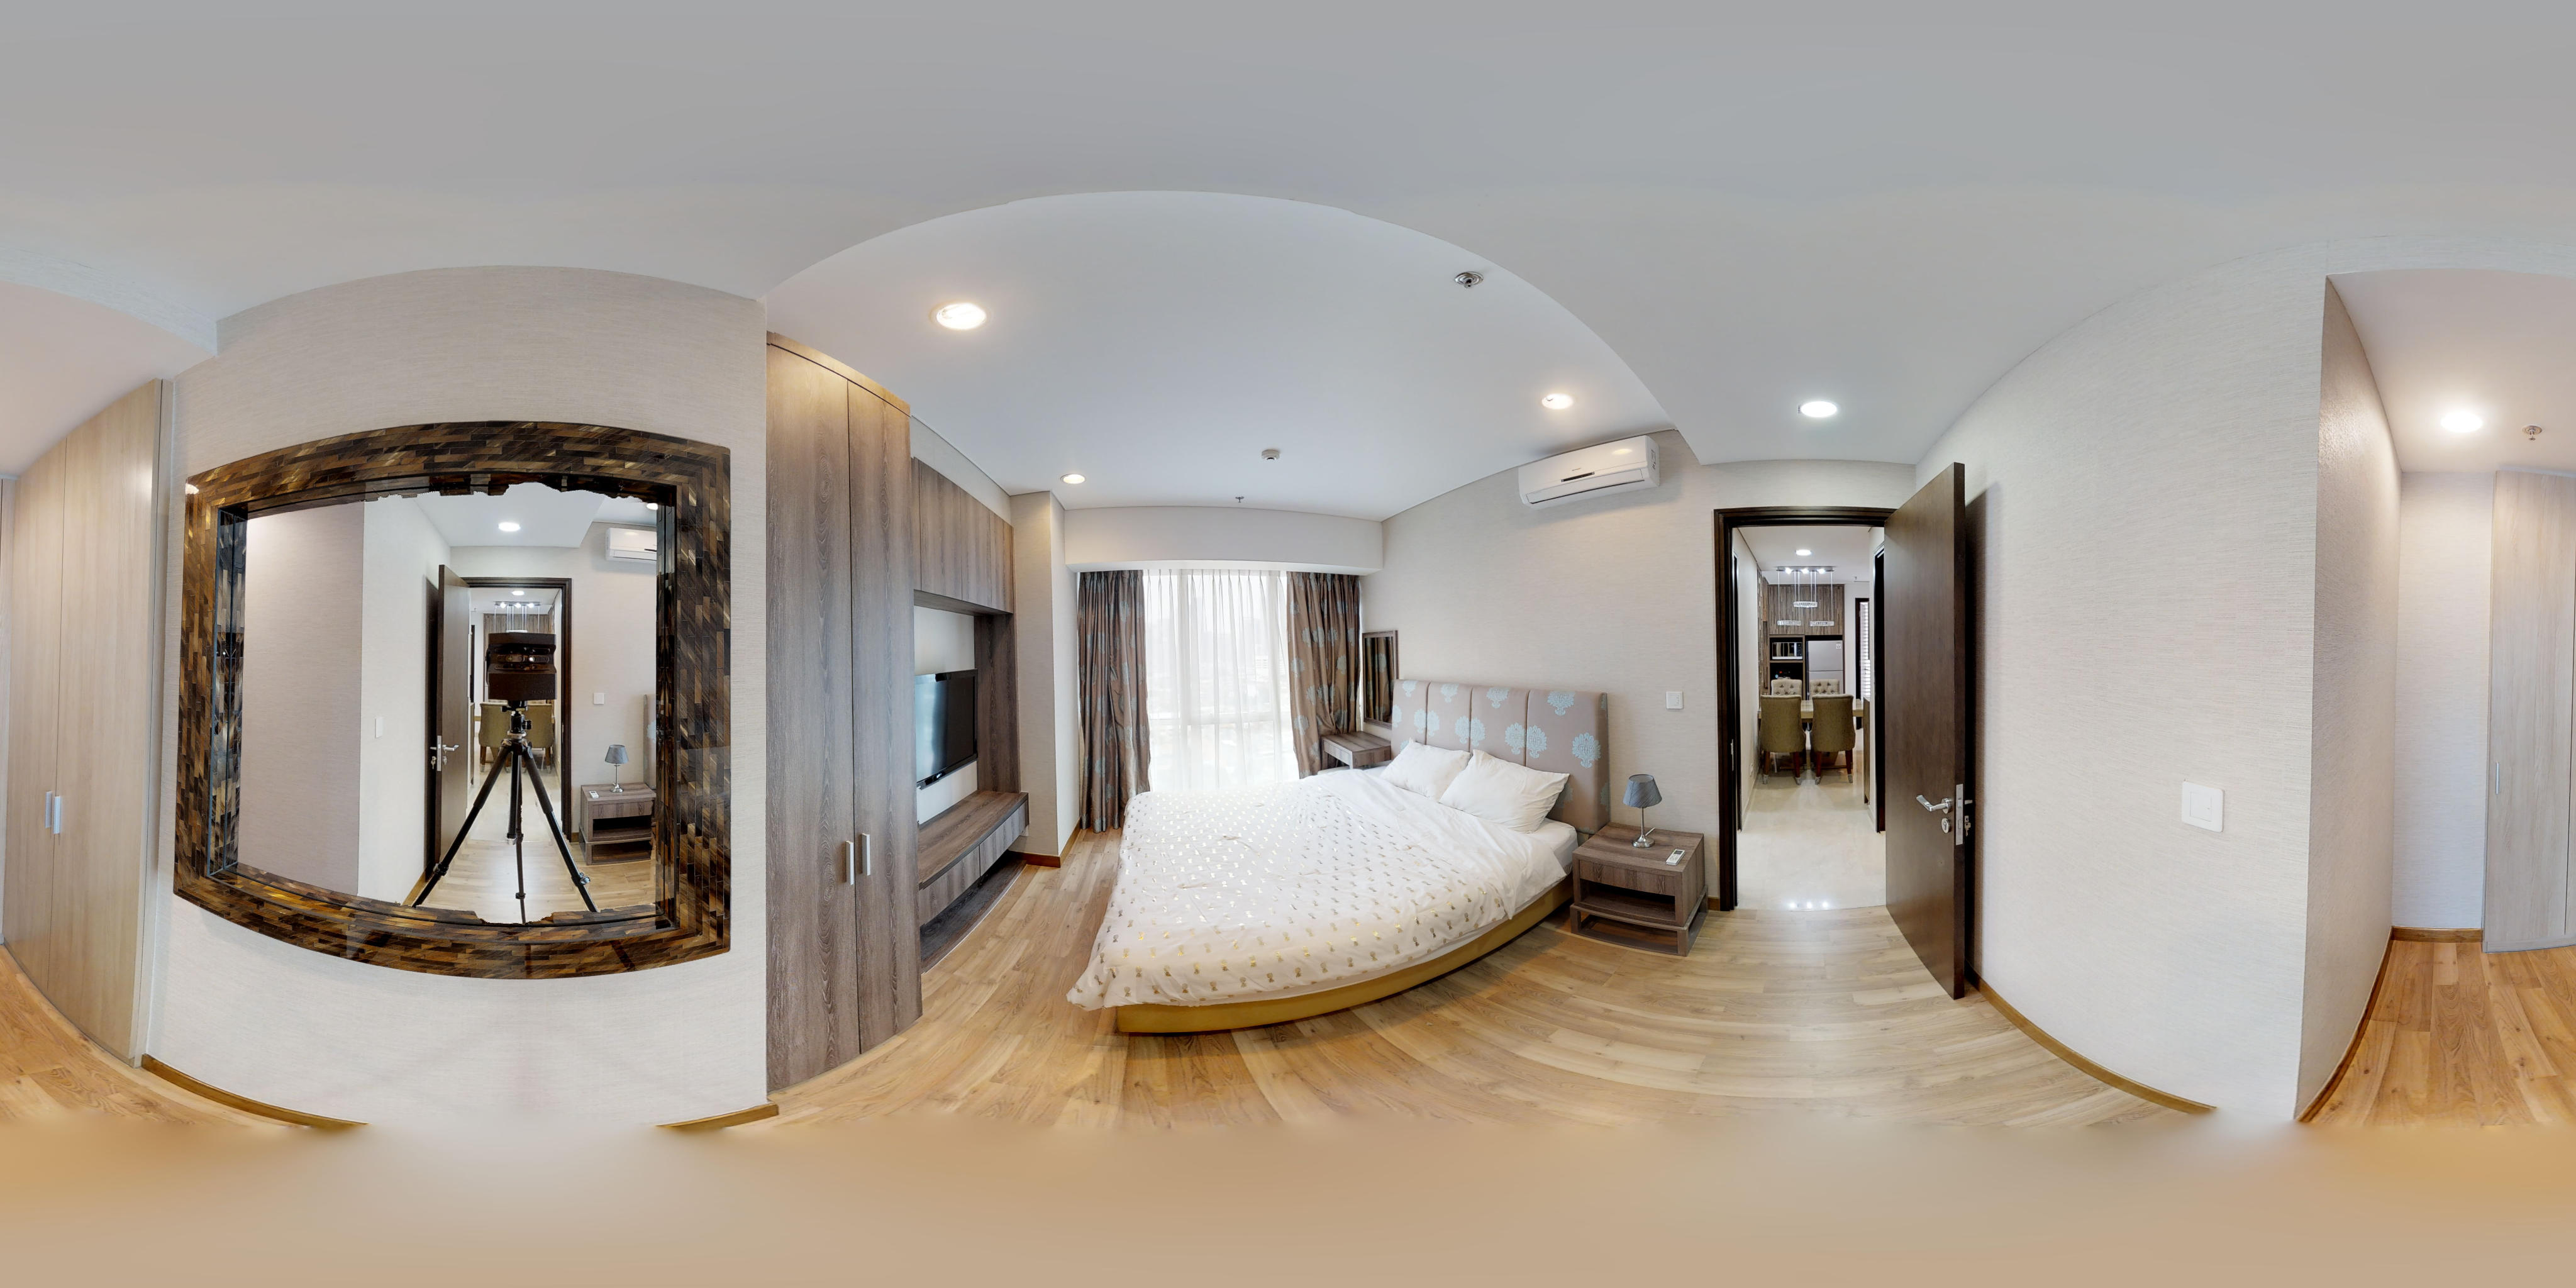 for rent Setiabudi SkyGarden - Spacious 2 bedroom unit perfect for new couple in town